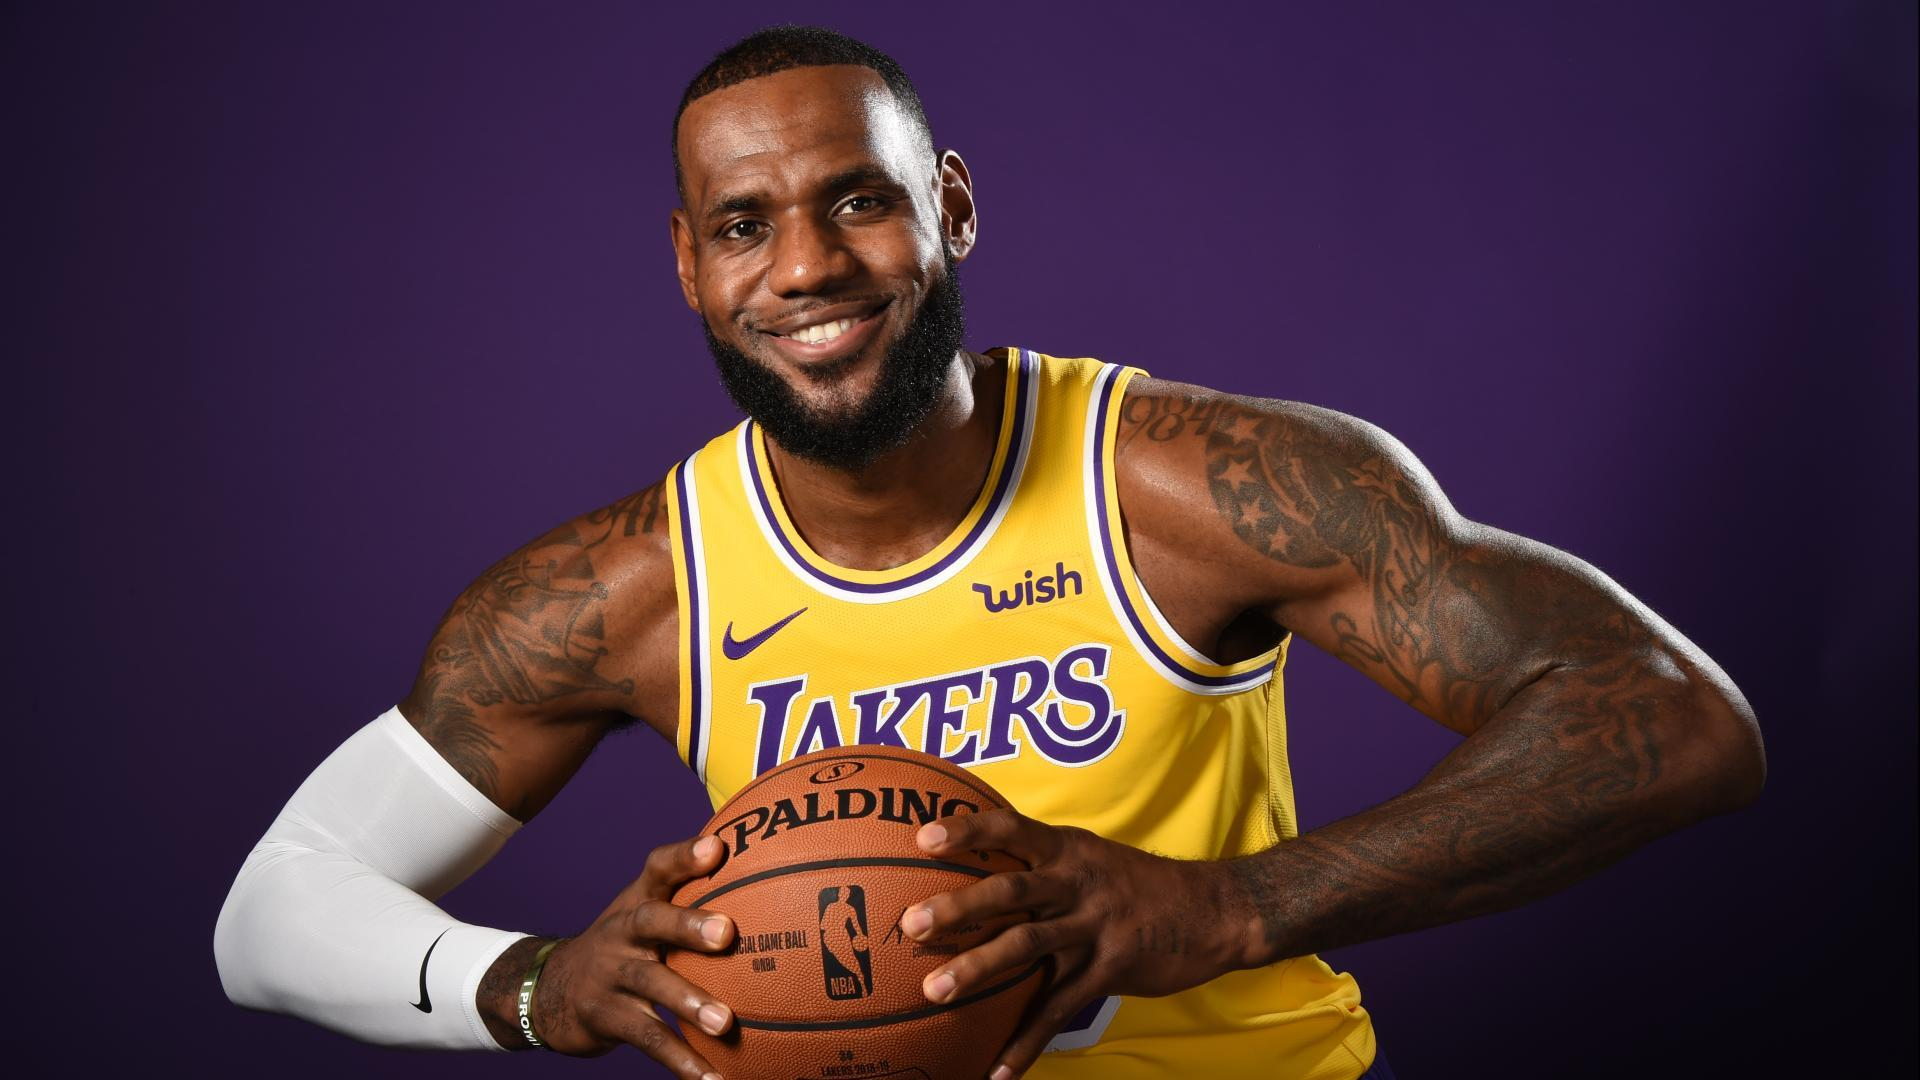 LeBron recruit KD to Lakers? 'Hell no, 100 percent false'